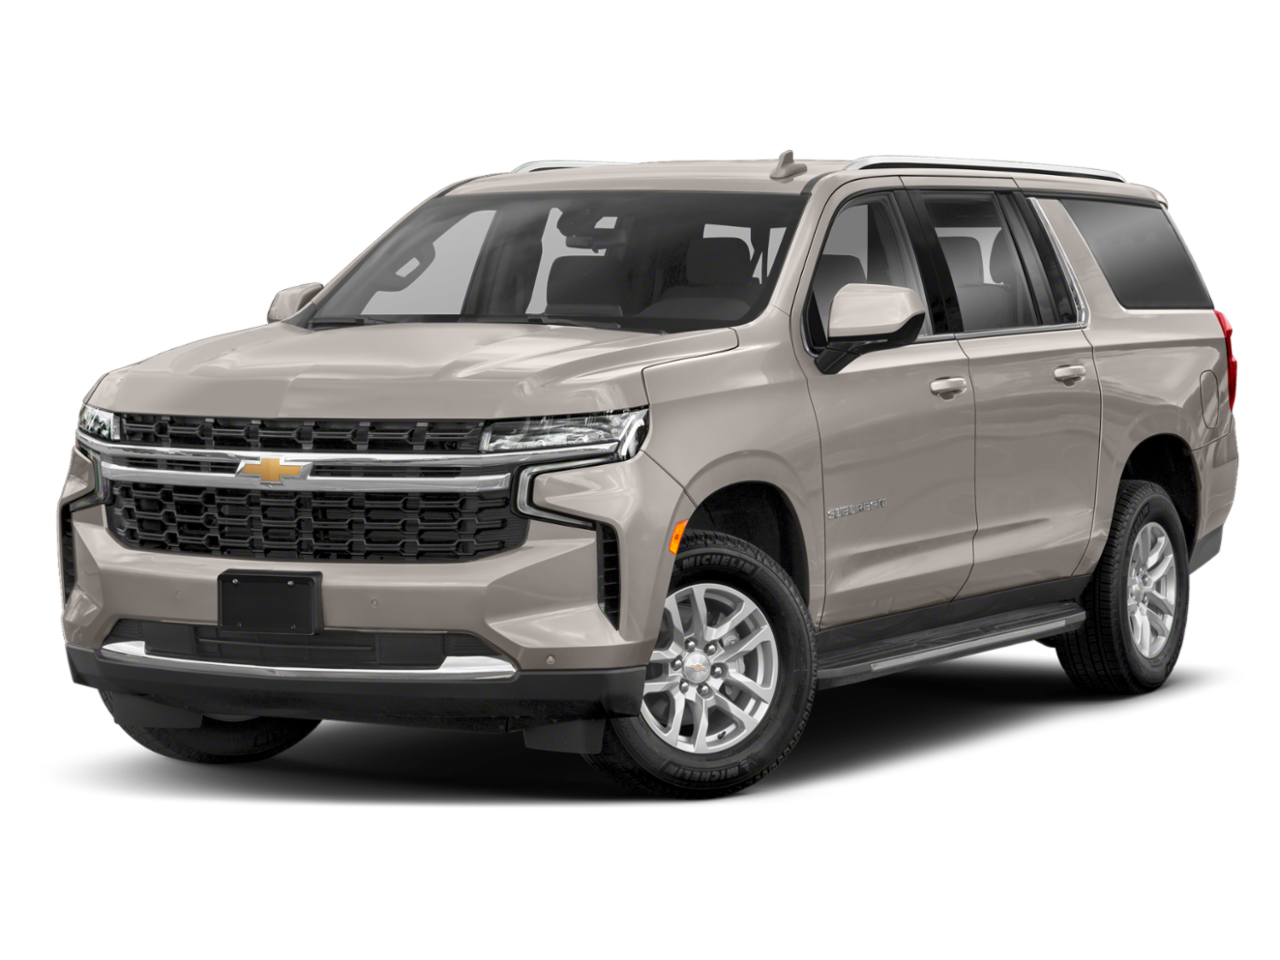 Buckalew Chevrolet In Conroe Serves Houston Tomball Spring